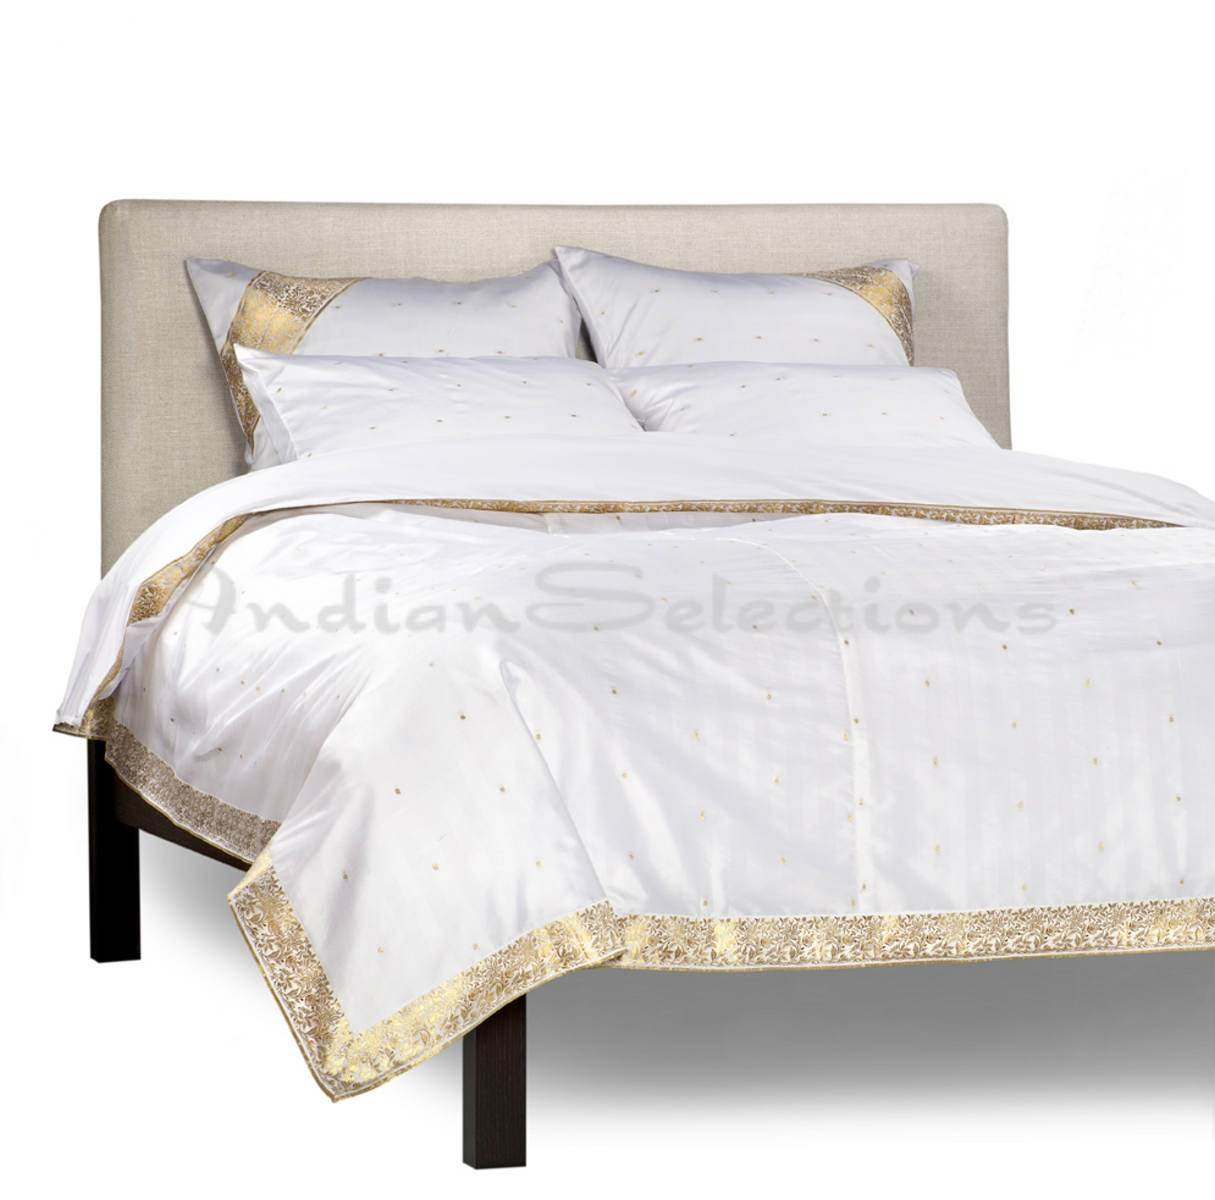 White Gold - 5 Piece Handmade Sari Duvet Cover Set with Pillow Covers / Euro Sham - King